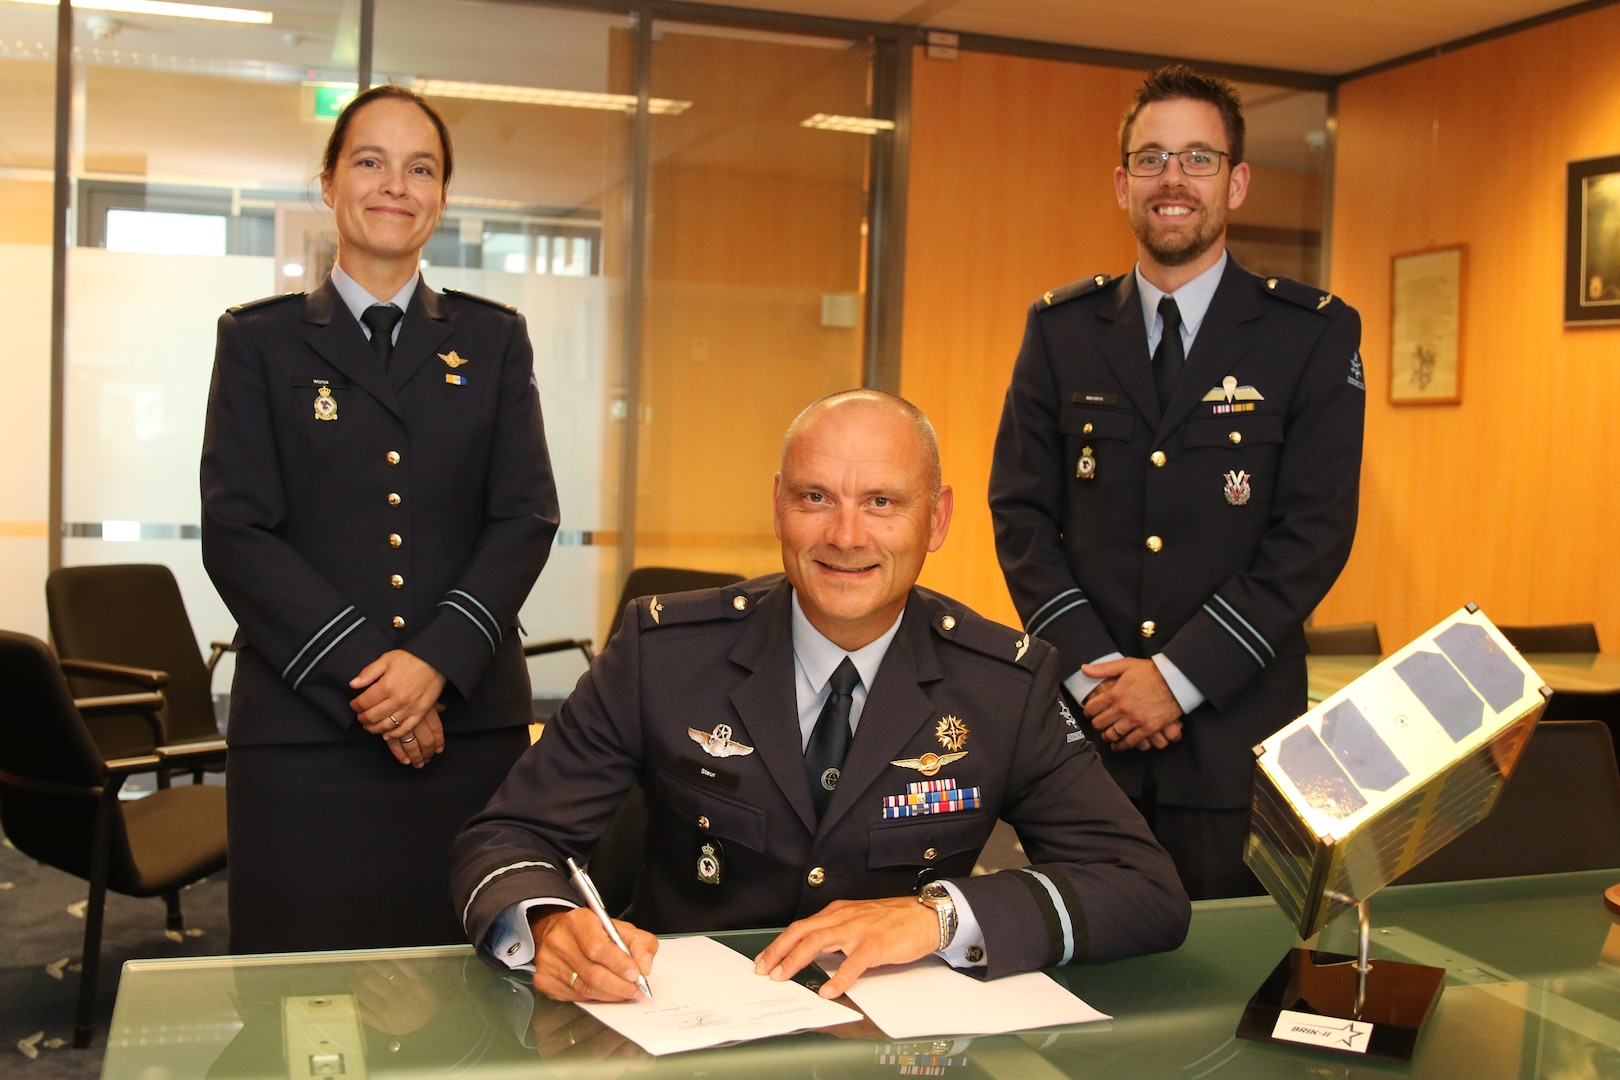 Royal Netherlands Air Force Air Commodore Andre Steur, Director of operations signs the MOU at Royal Netherlands Air Force Headquarters.